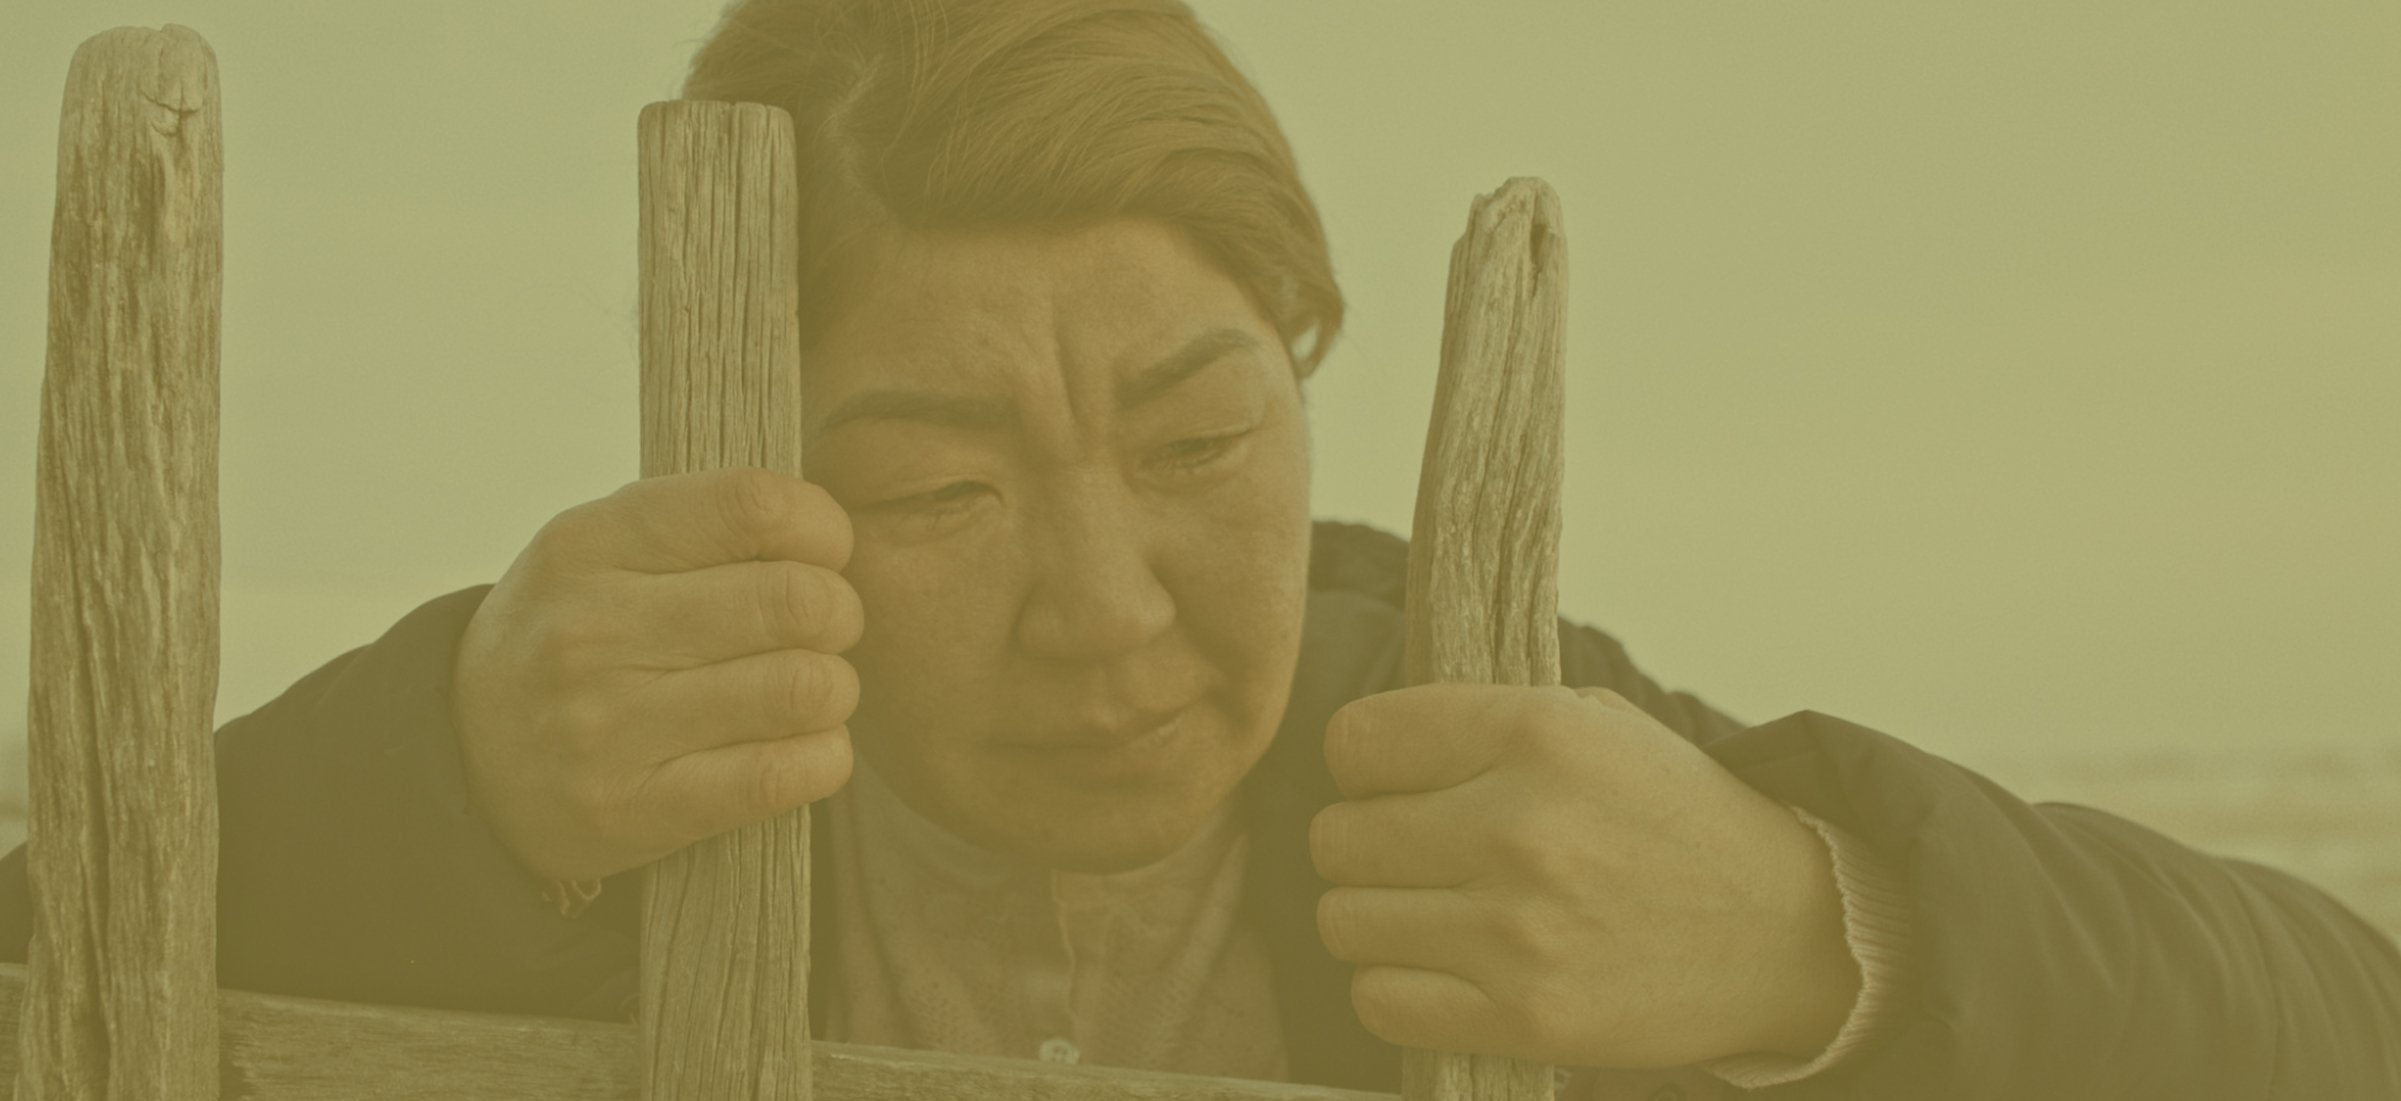 A woman fights for survival in a remote village on the Kazakh Steppe after her husband disappears and is presumed dead.